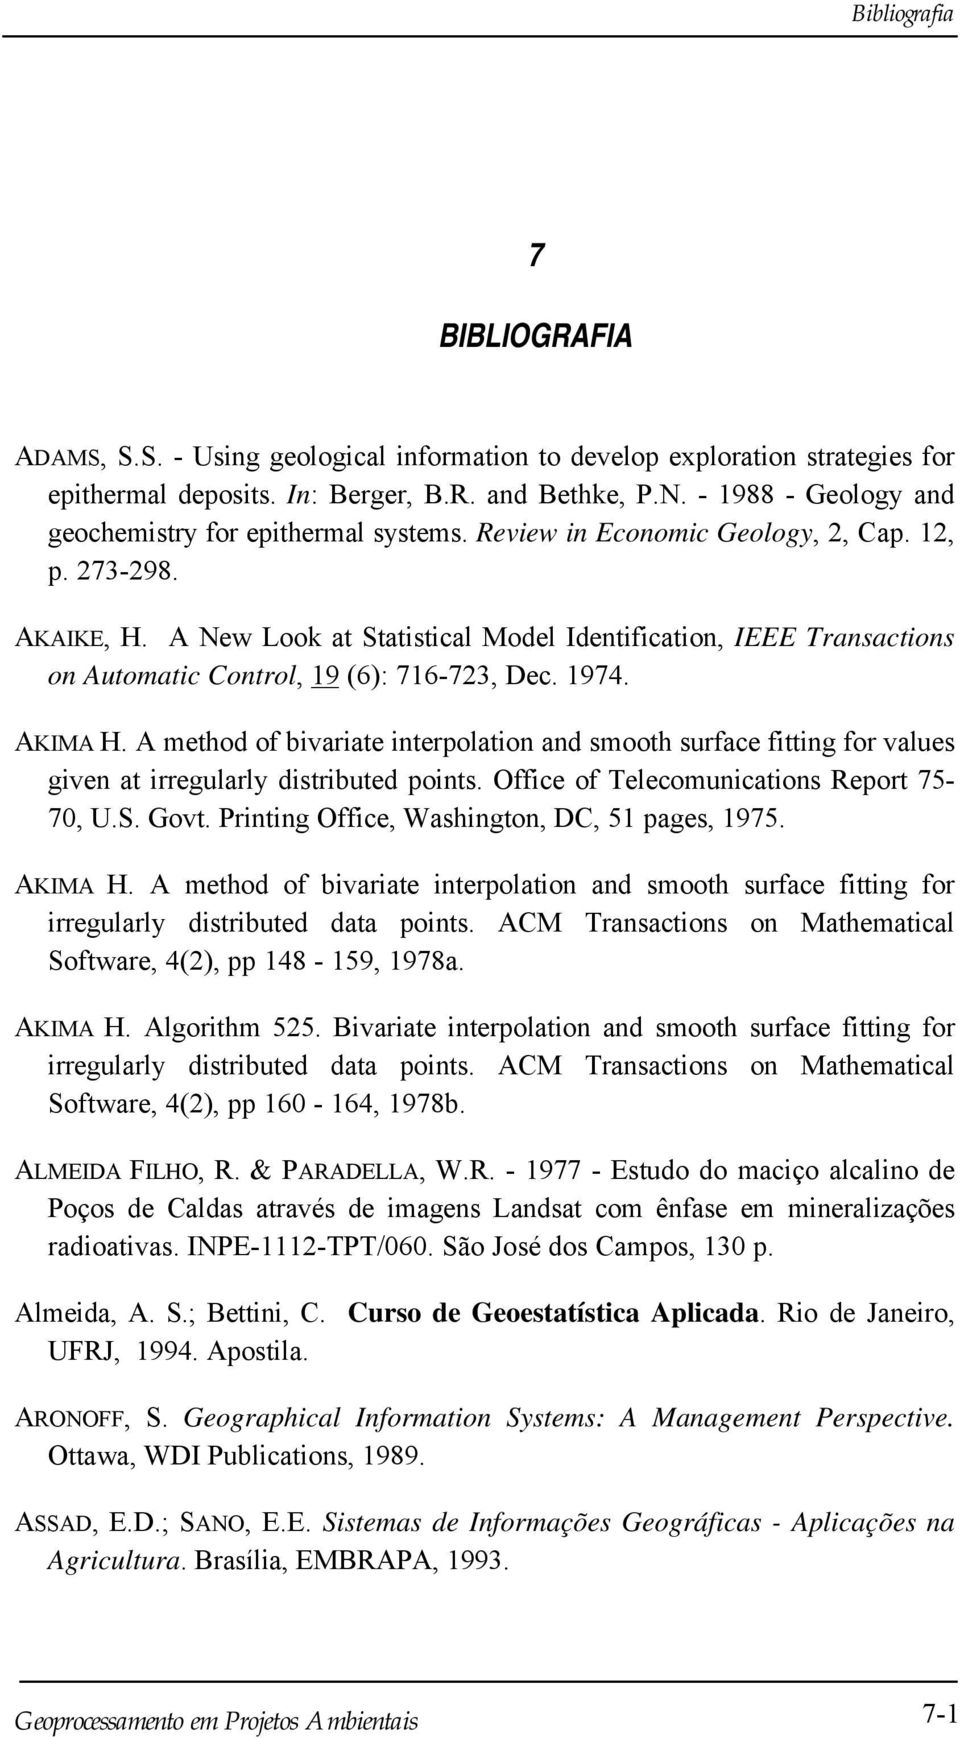 A New Look at Statistical Model Identification, IEEE Transactions on Automatic Control, 19 (6): 716-723, Dec. 1974. AKIMA H.